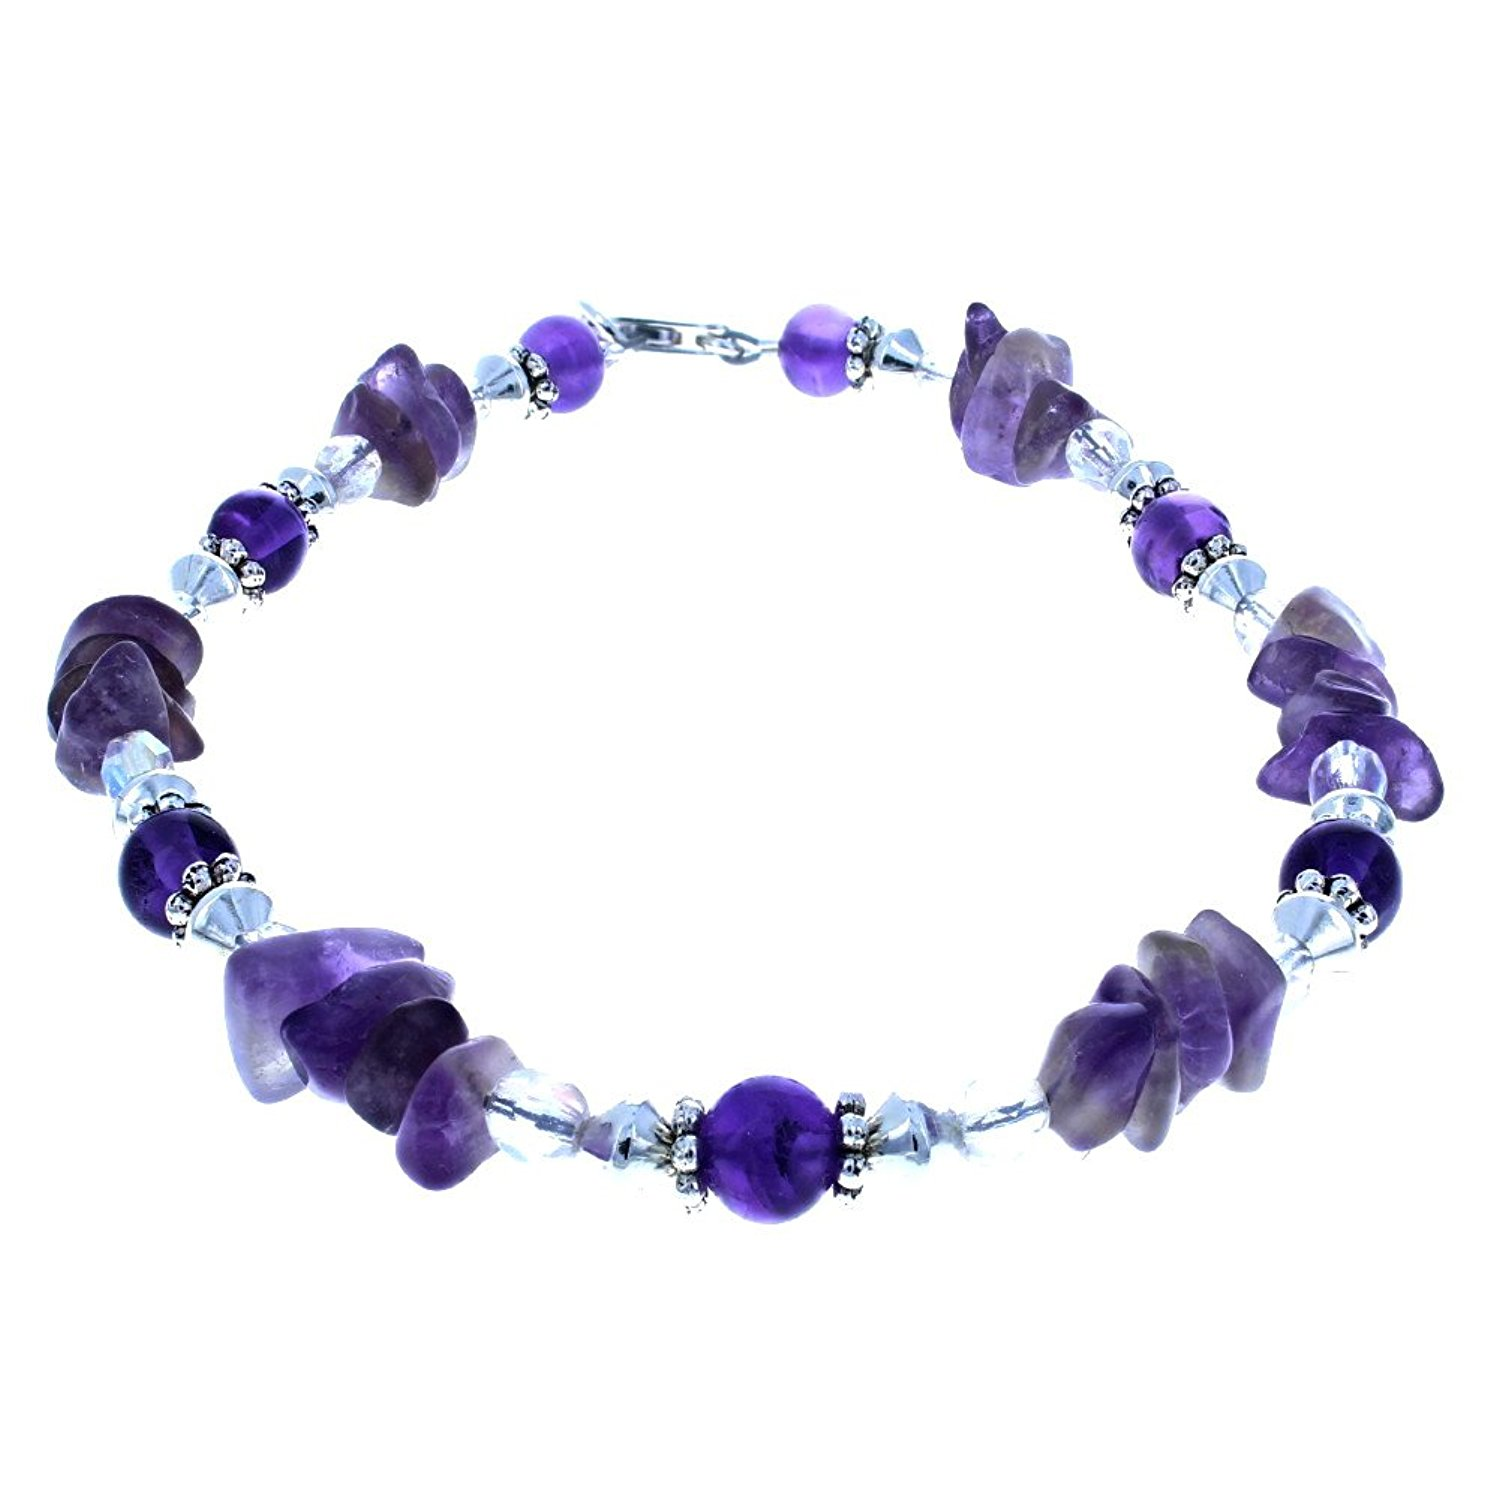 Womens Amethyst, Czech Fire Polished Glass & Sterling Silver Beaded Gemstone Anklet w/ Daisies